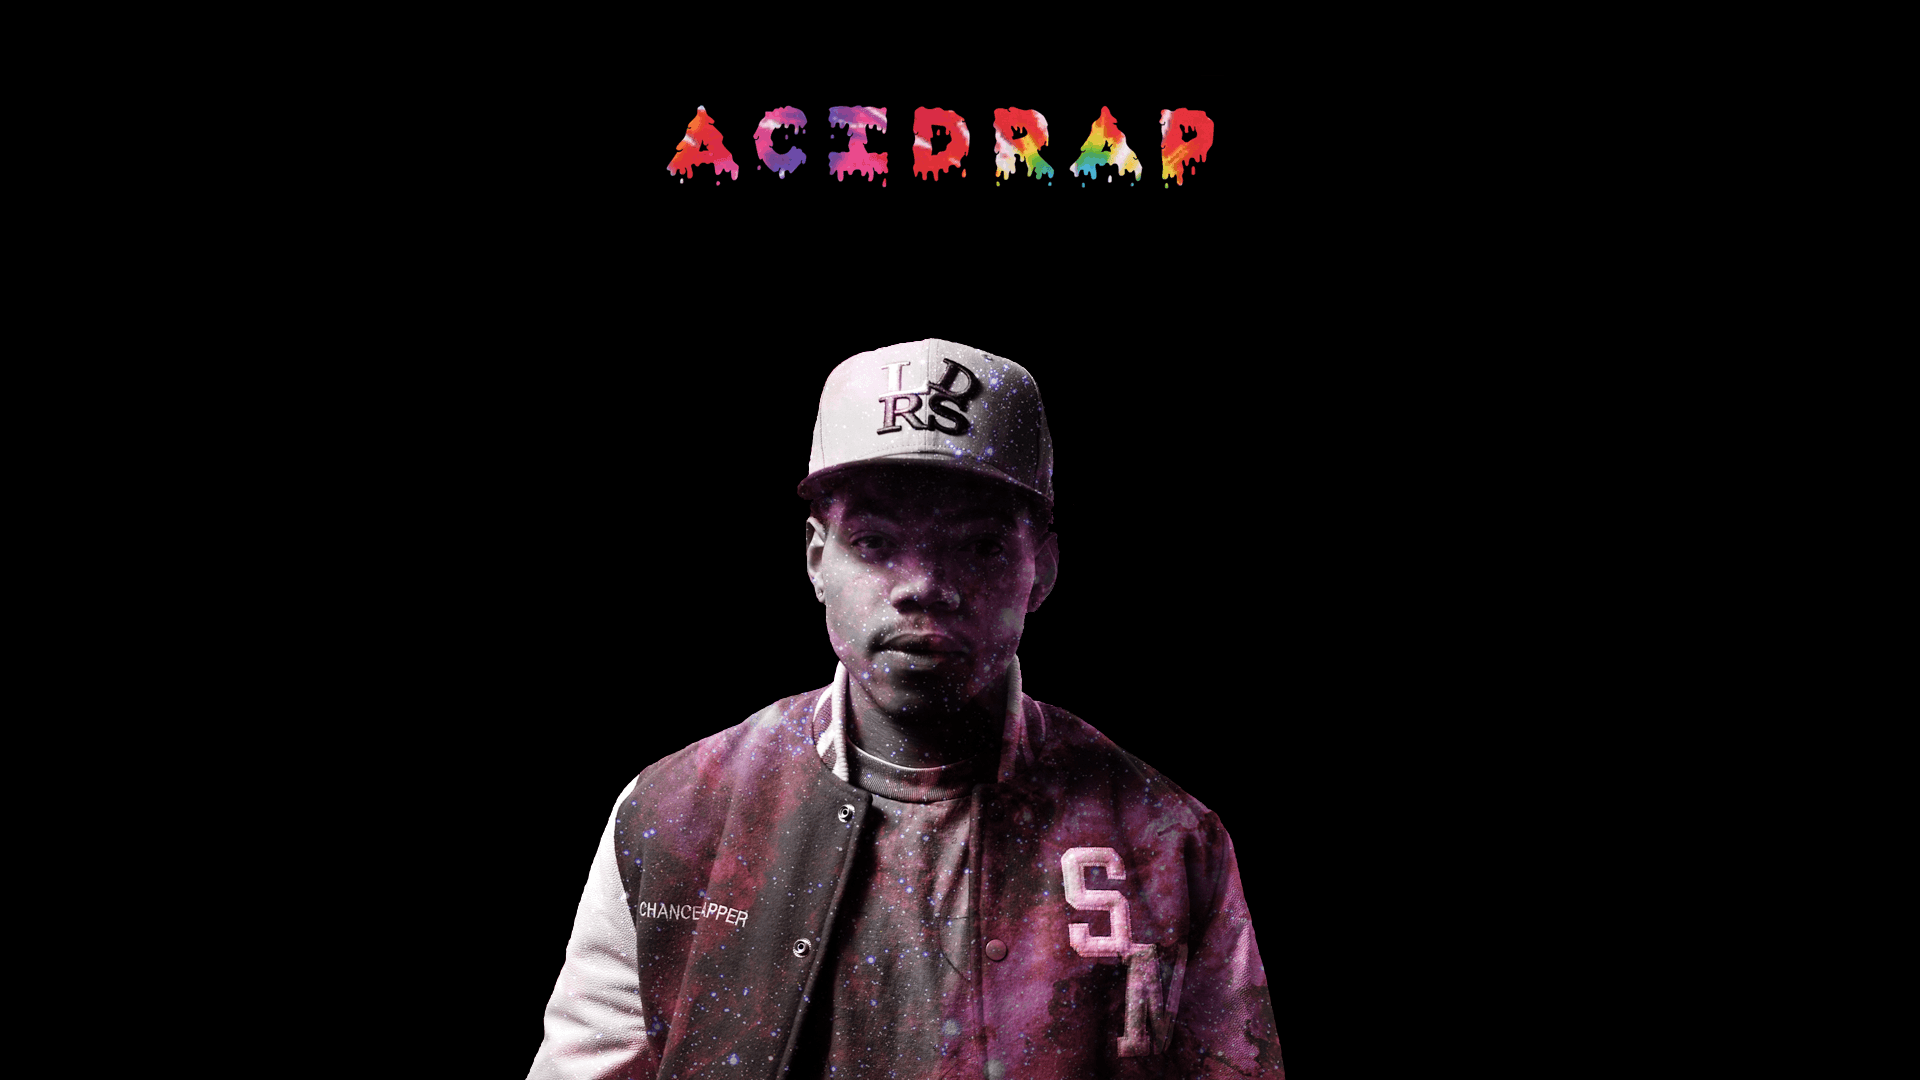 Chance The Rapper Wallpapers